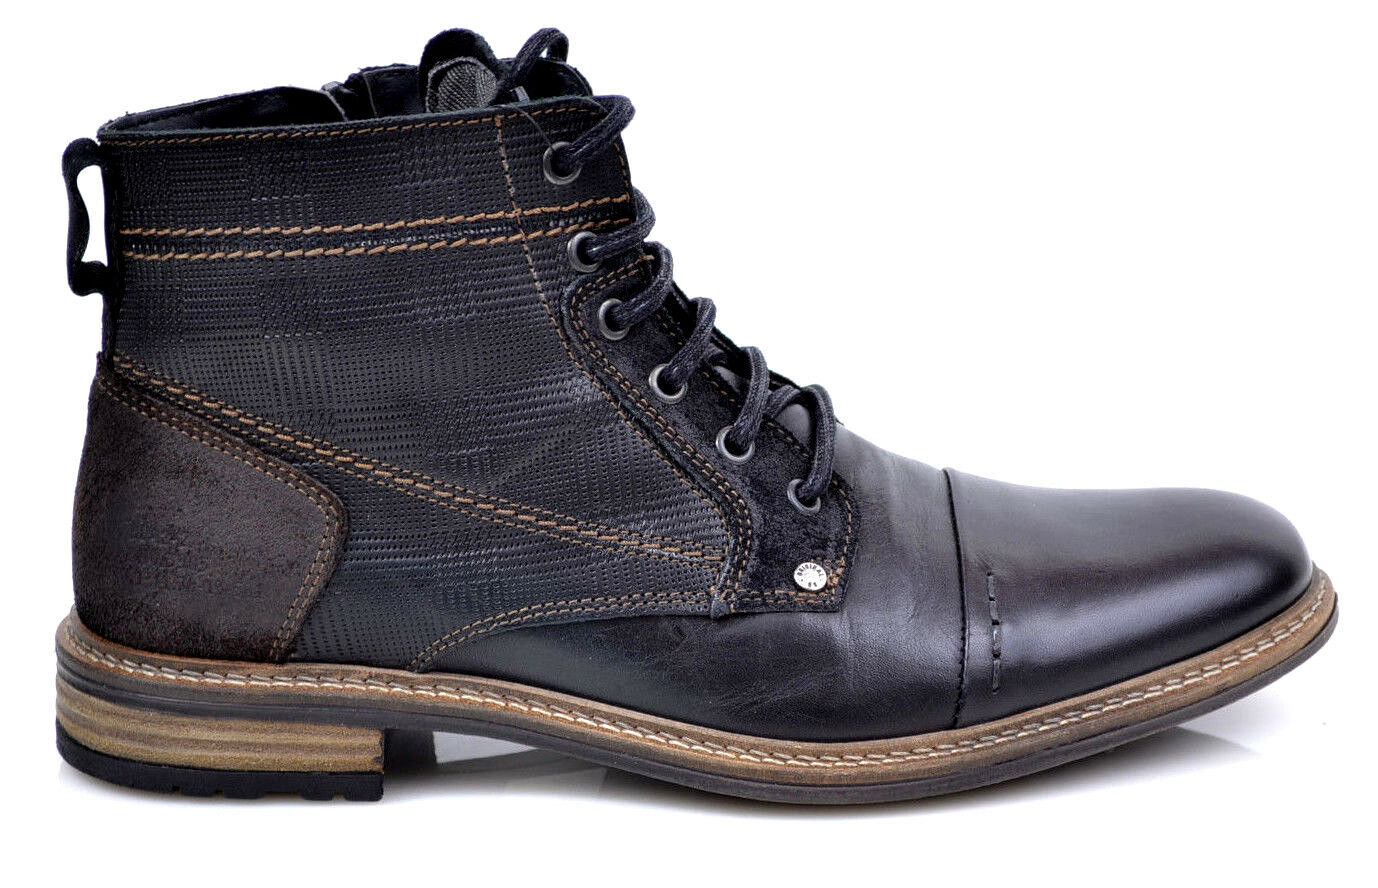 BULLBOXER Stiefeletten | All Shoes and More Shoes | Schuhe